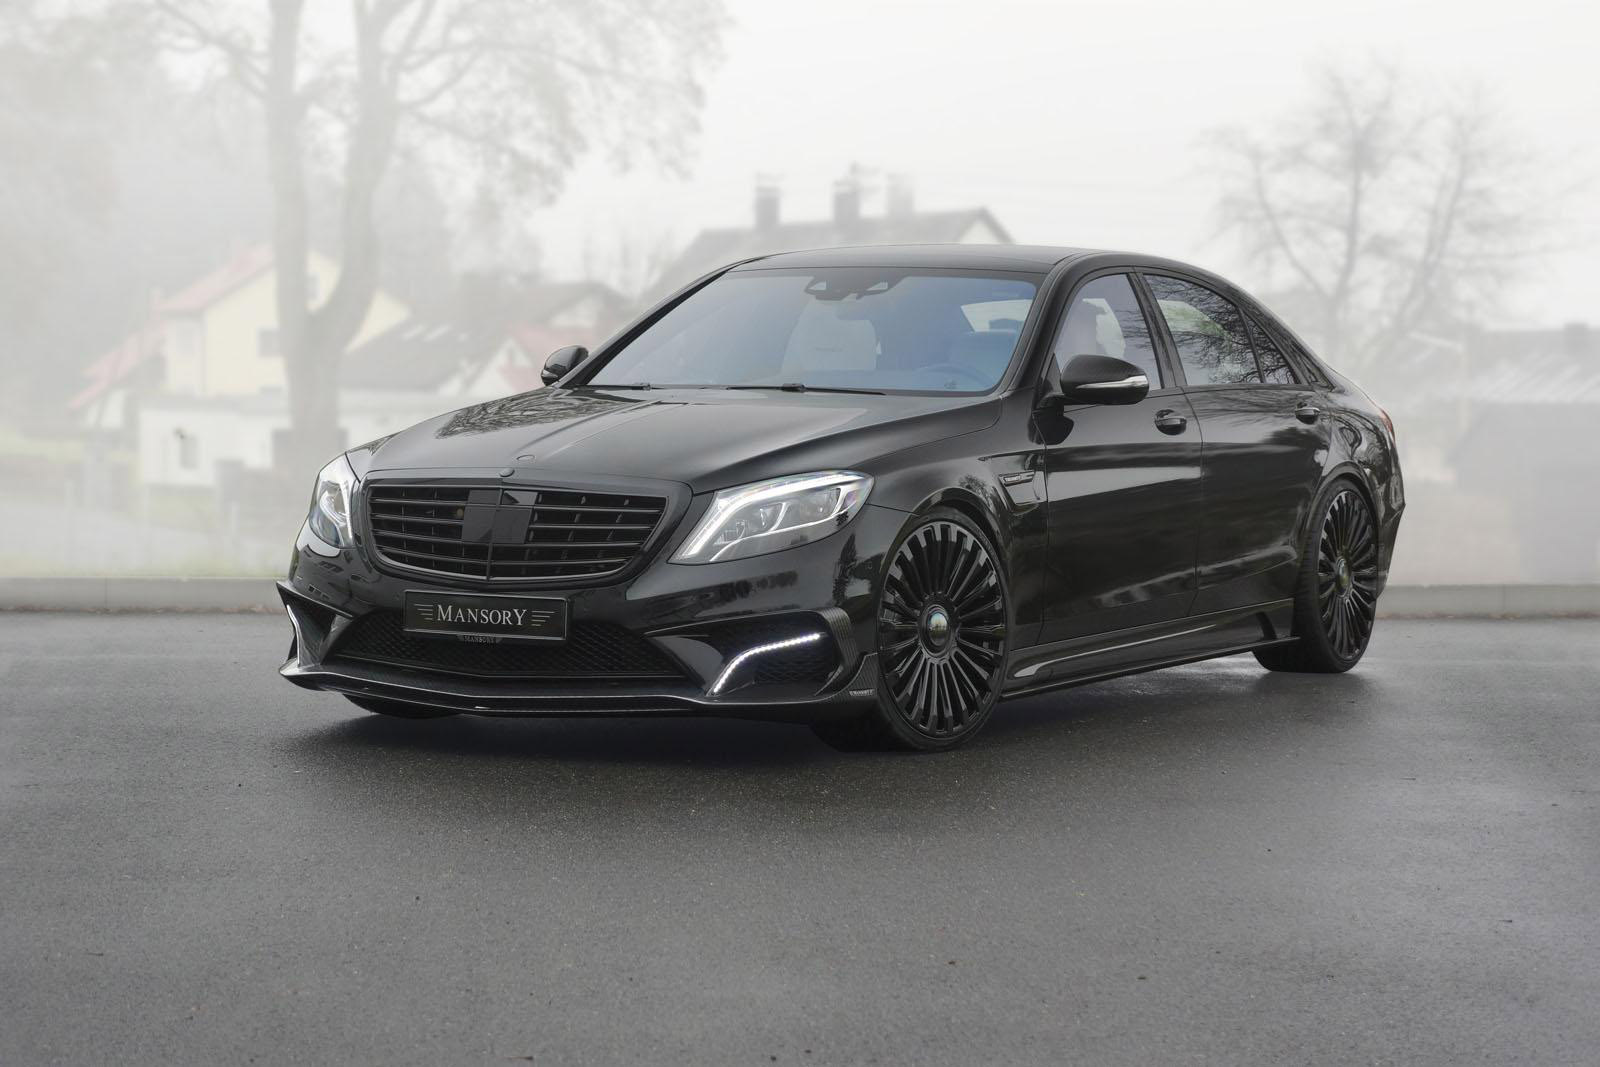 mansory crafts a 1000 hp mercedes benz s class amg s63. Black Bedroom Furniture Sets. Home Design Ideas